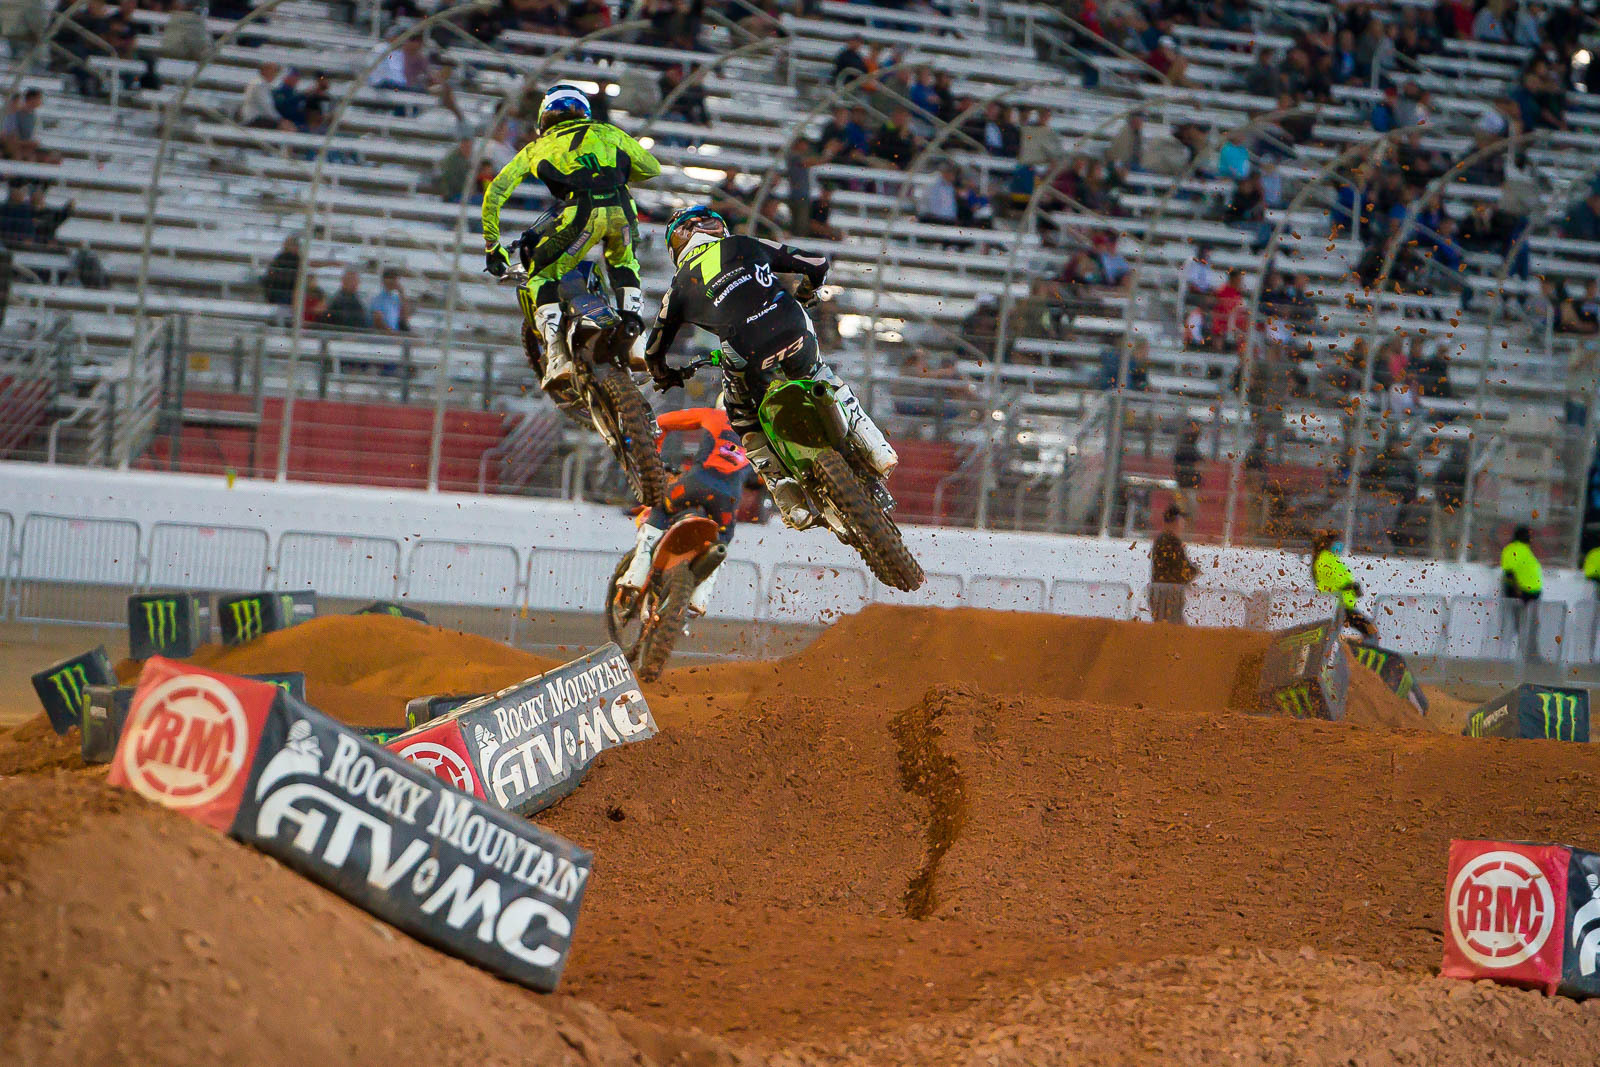 2021-ATLANTA-THREE-SUPERCROSS_KICKSTART_1002